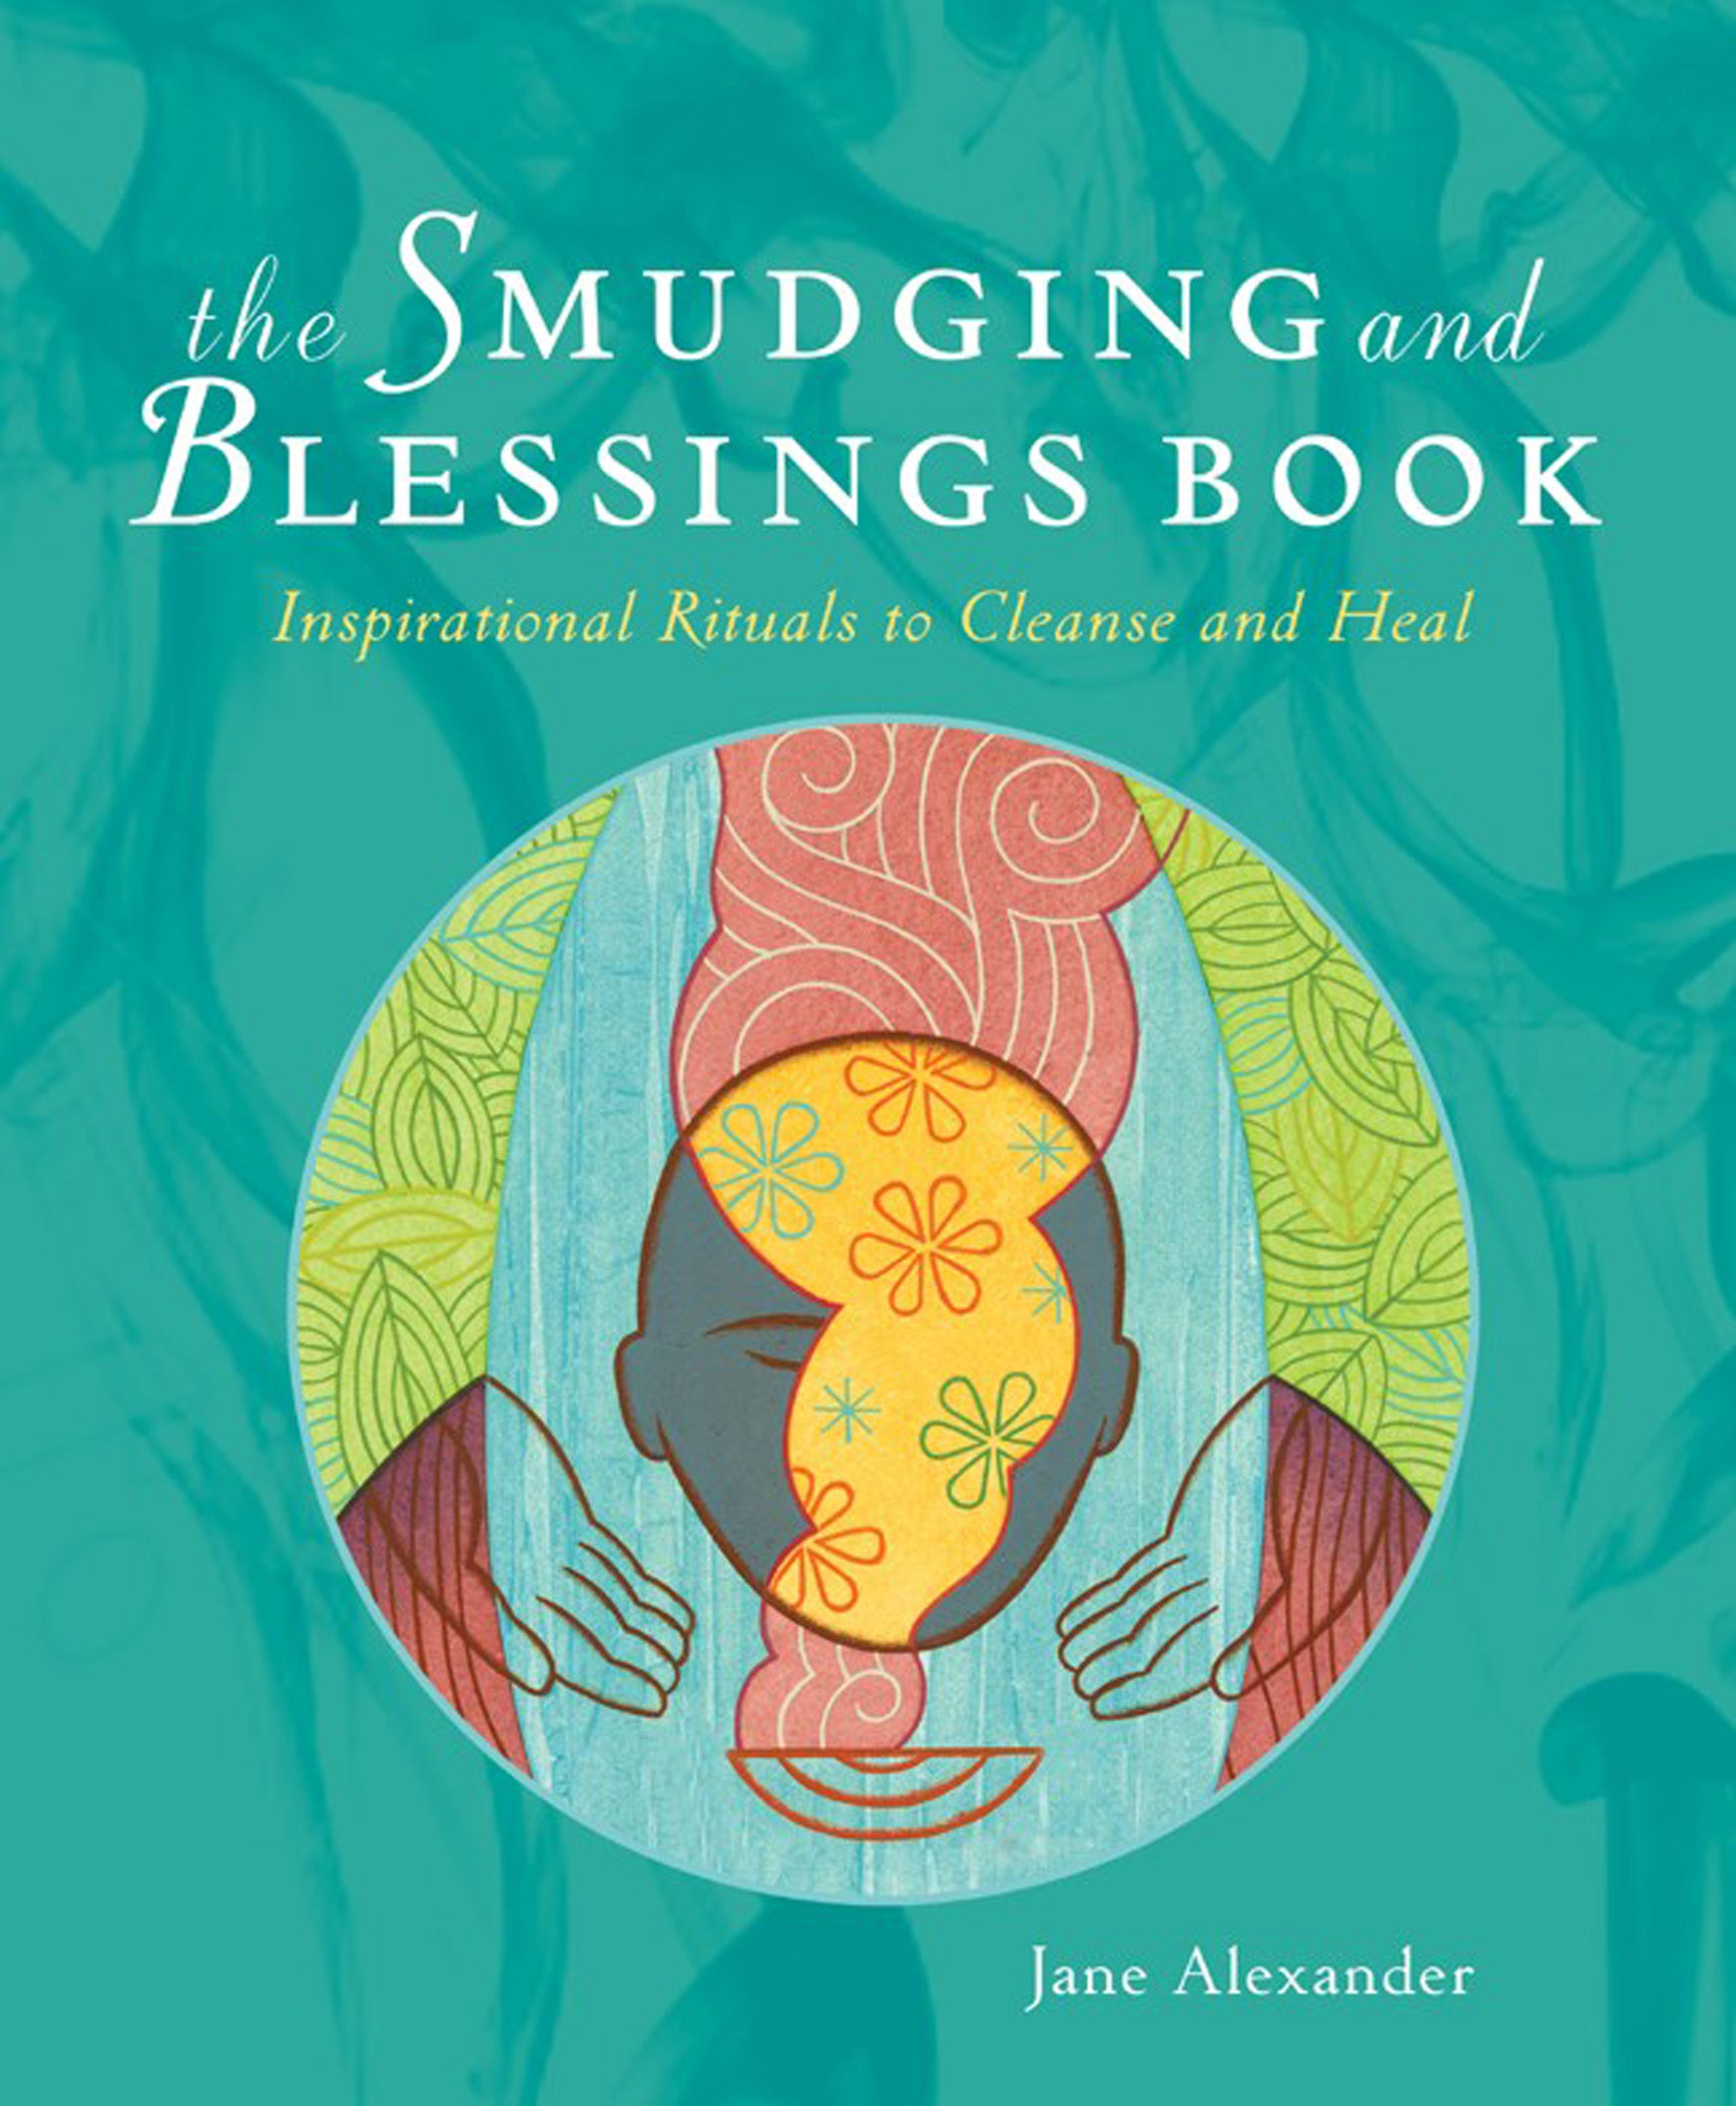 The Smudging and Blessing Book (Jane Alexander)